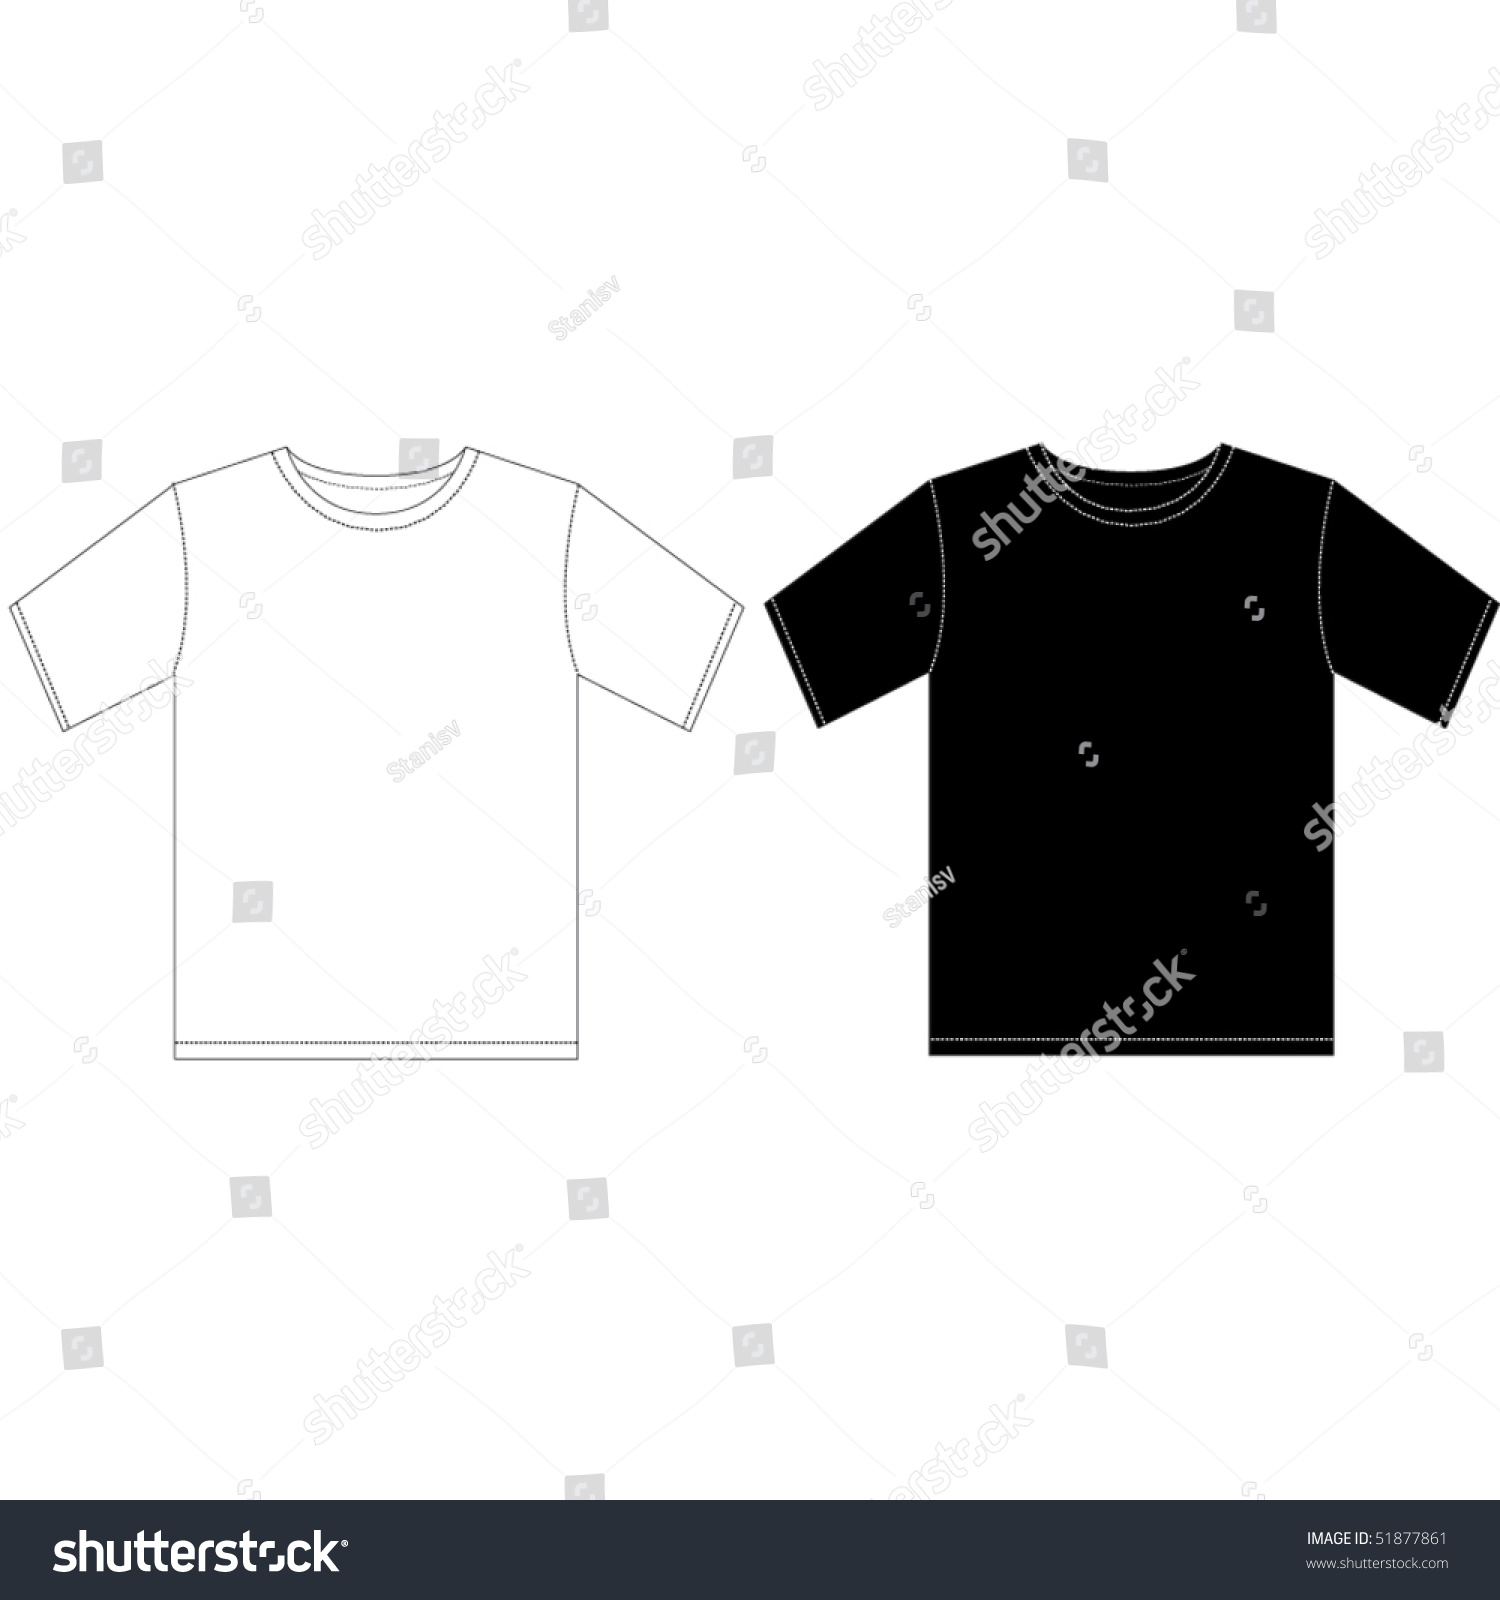 Black t shirt design template - Black And White Man T Shirt Design Template